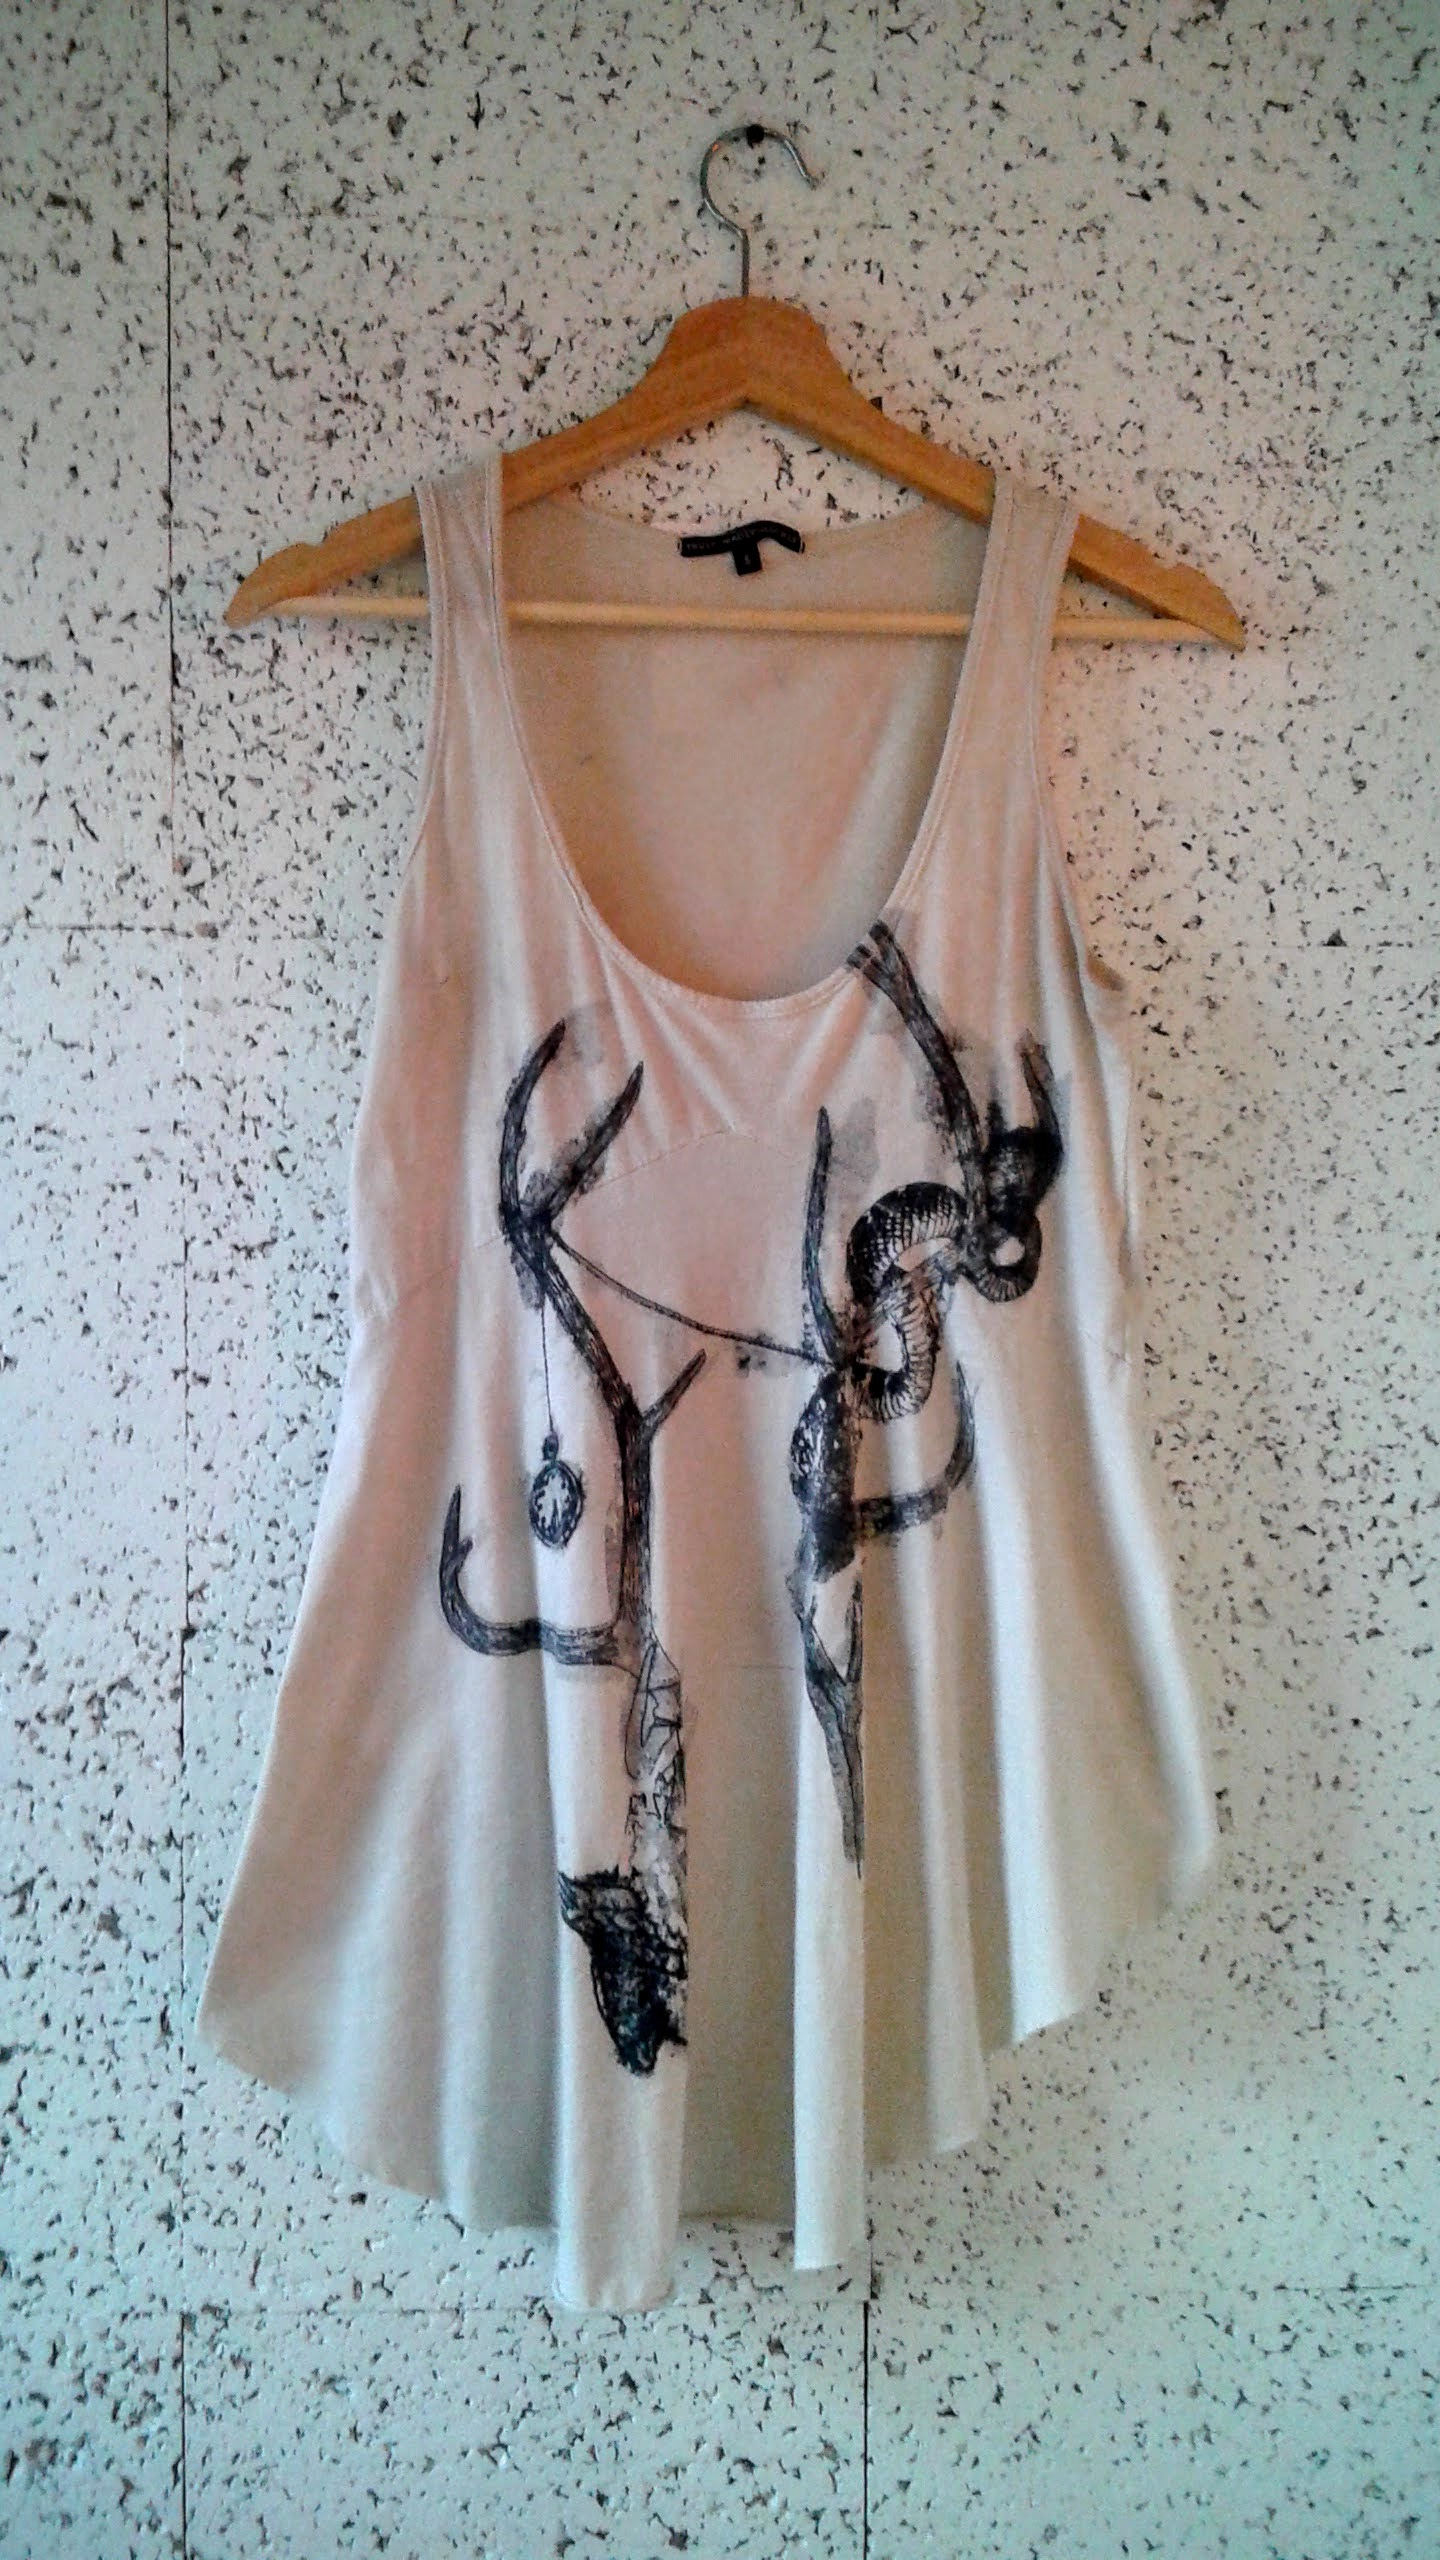 Truely Madly Deeply top; Size S, $20